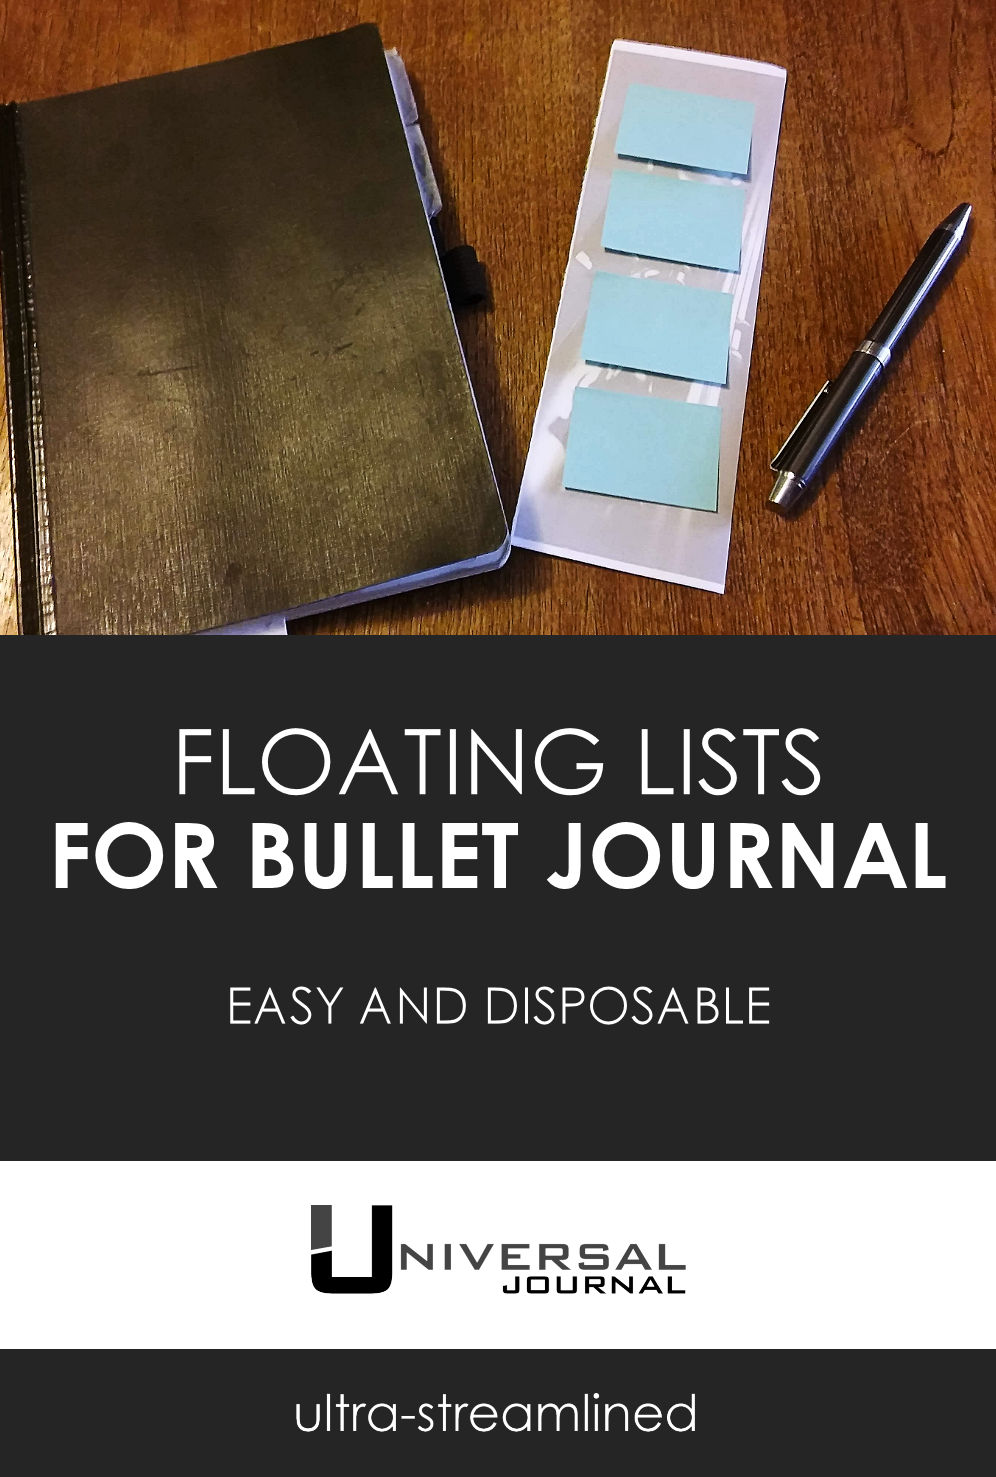 Disposable Floating Lists for Bullet Journal